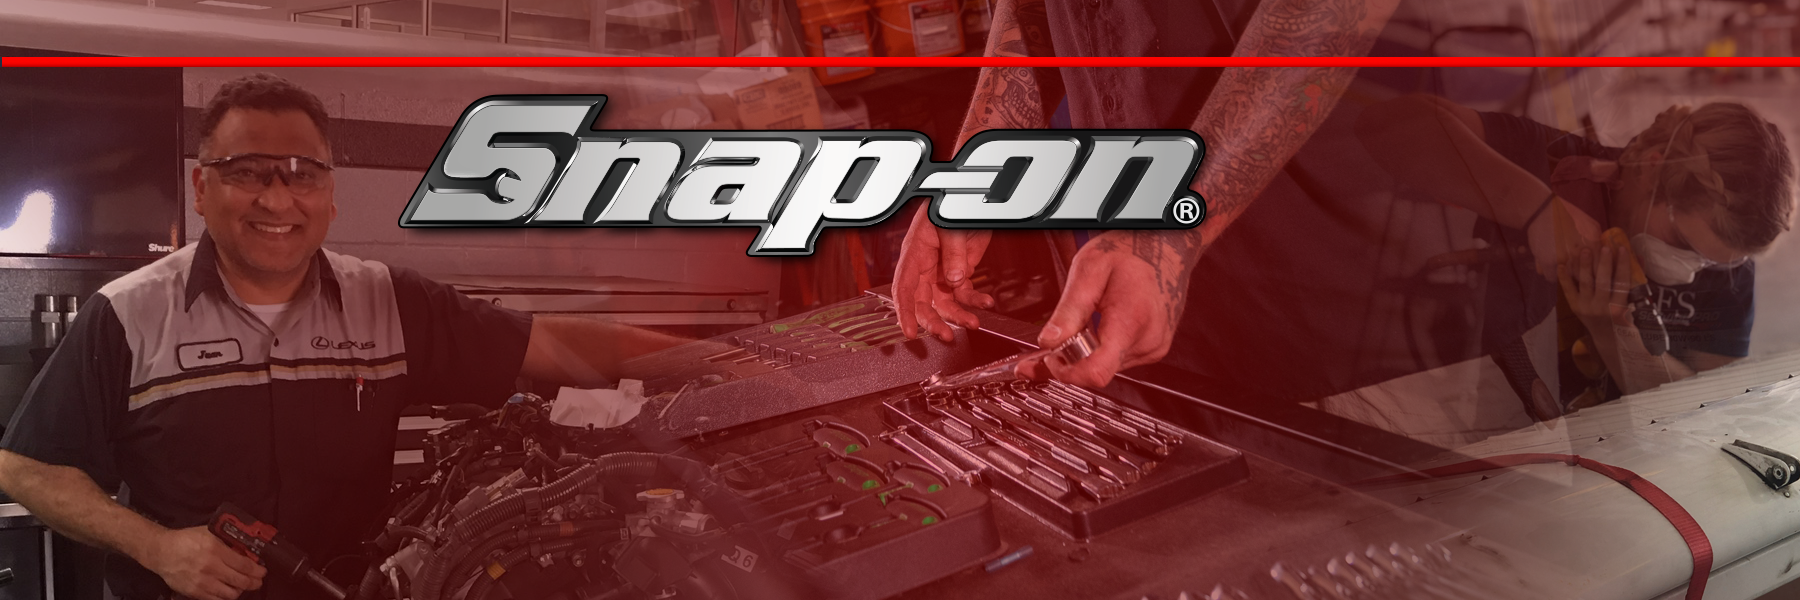 snapon-banner-industry-partner-page-6